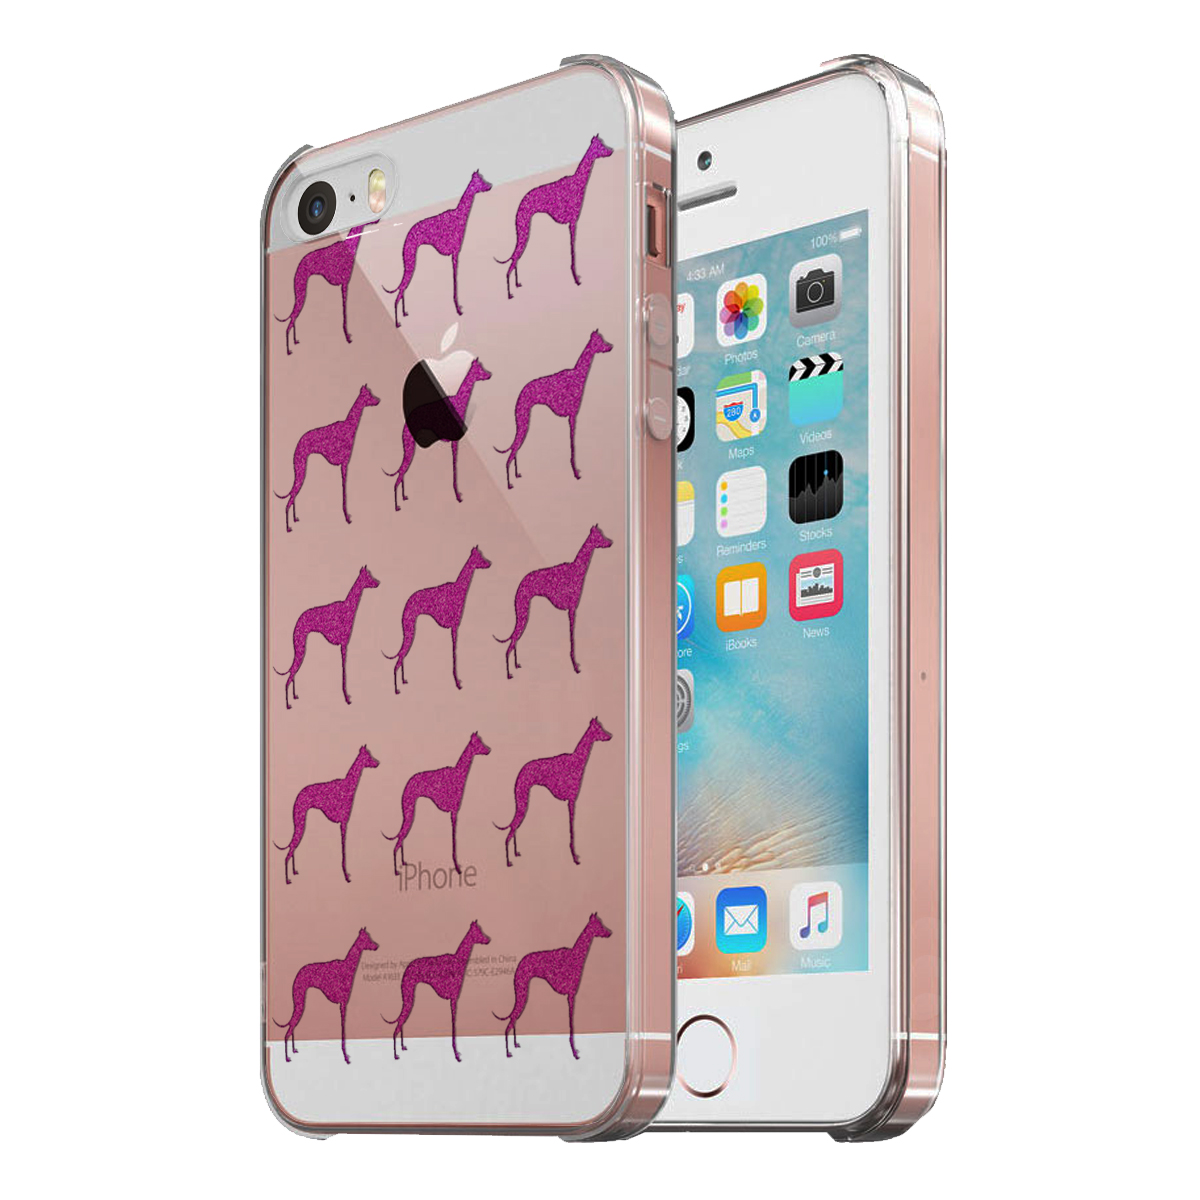 KuzmarK Clear Cover Case fits iPhone SE & iPhone 5 - Greyhound Pink